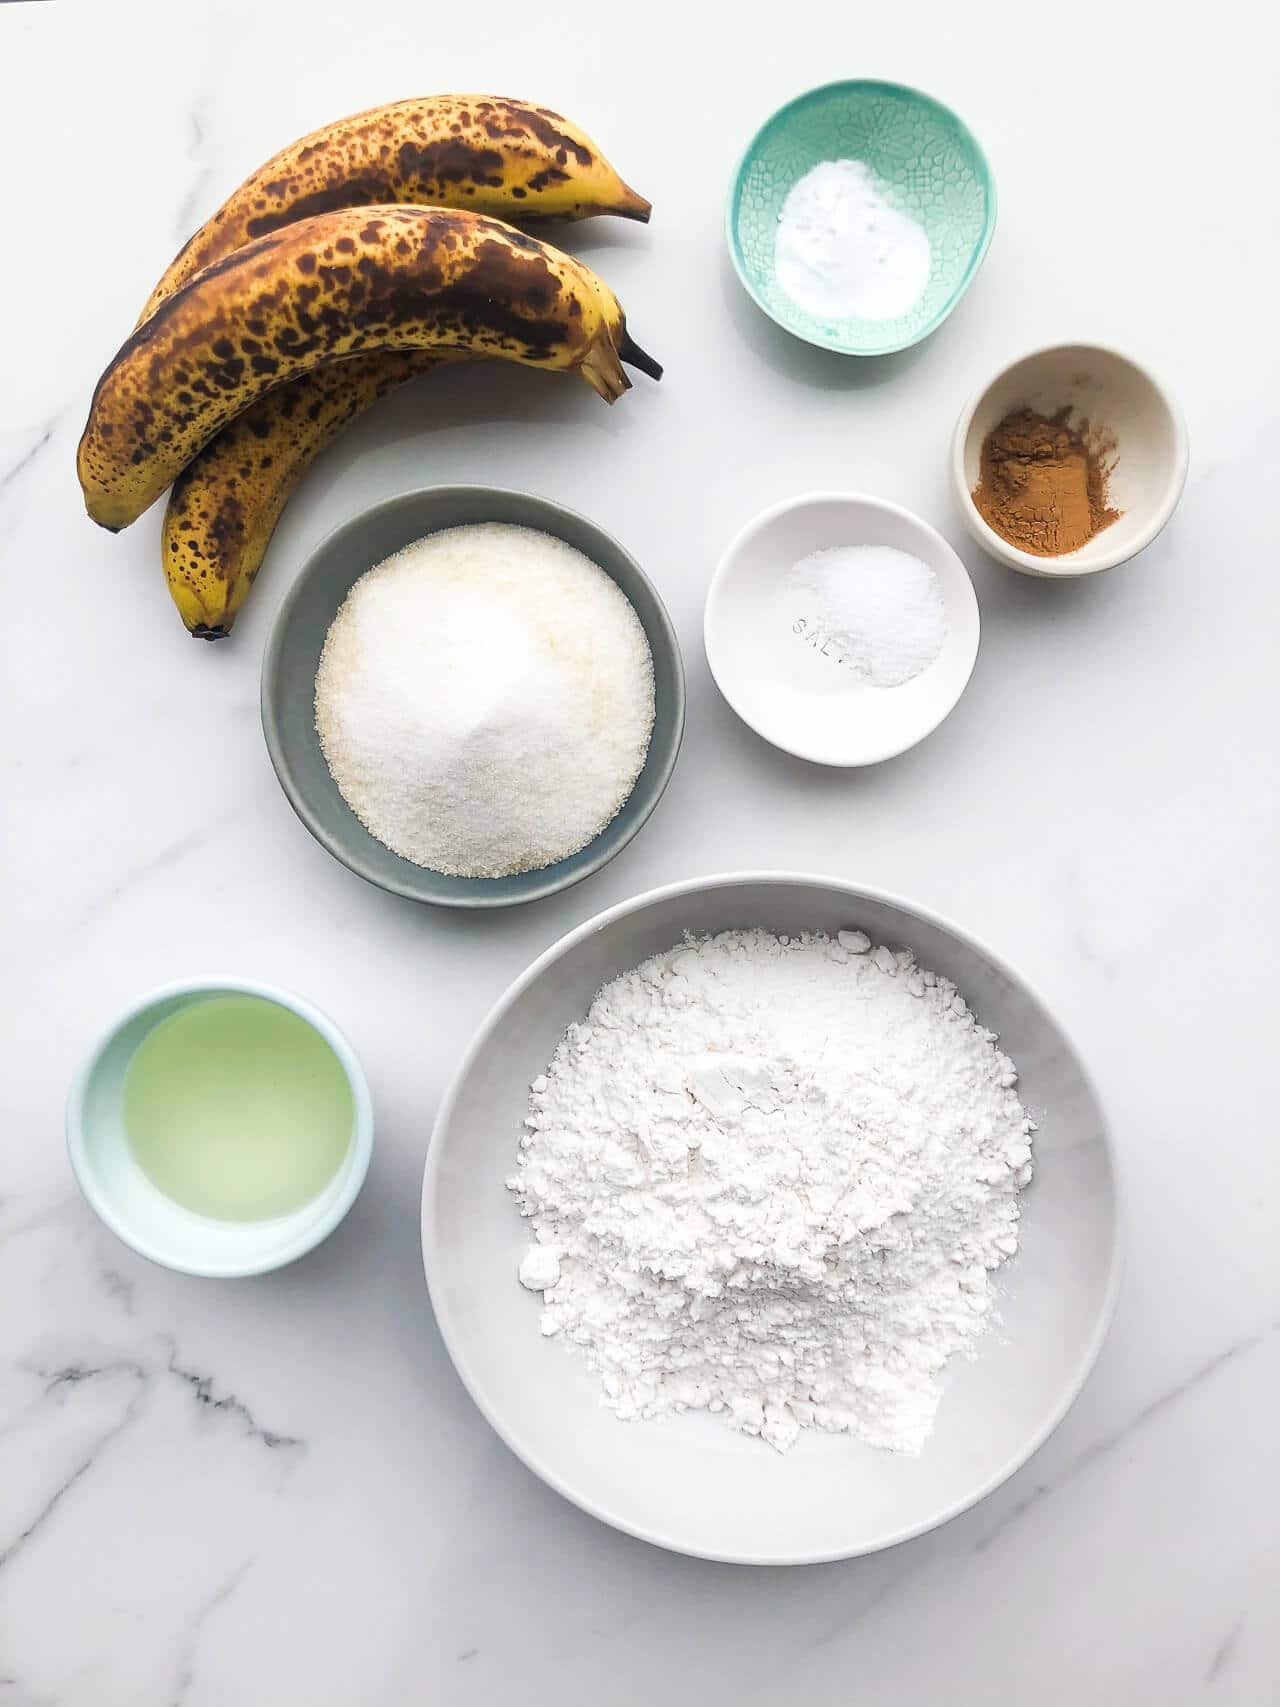 Bowls of ingredients for vegan banana bread (eggless and dairy-free) include oil, bananas, sugar, flour, baking soda, salt, cinnamon